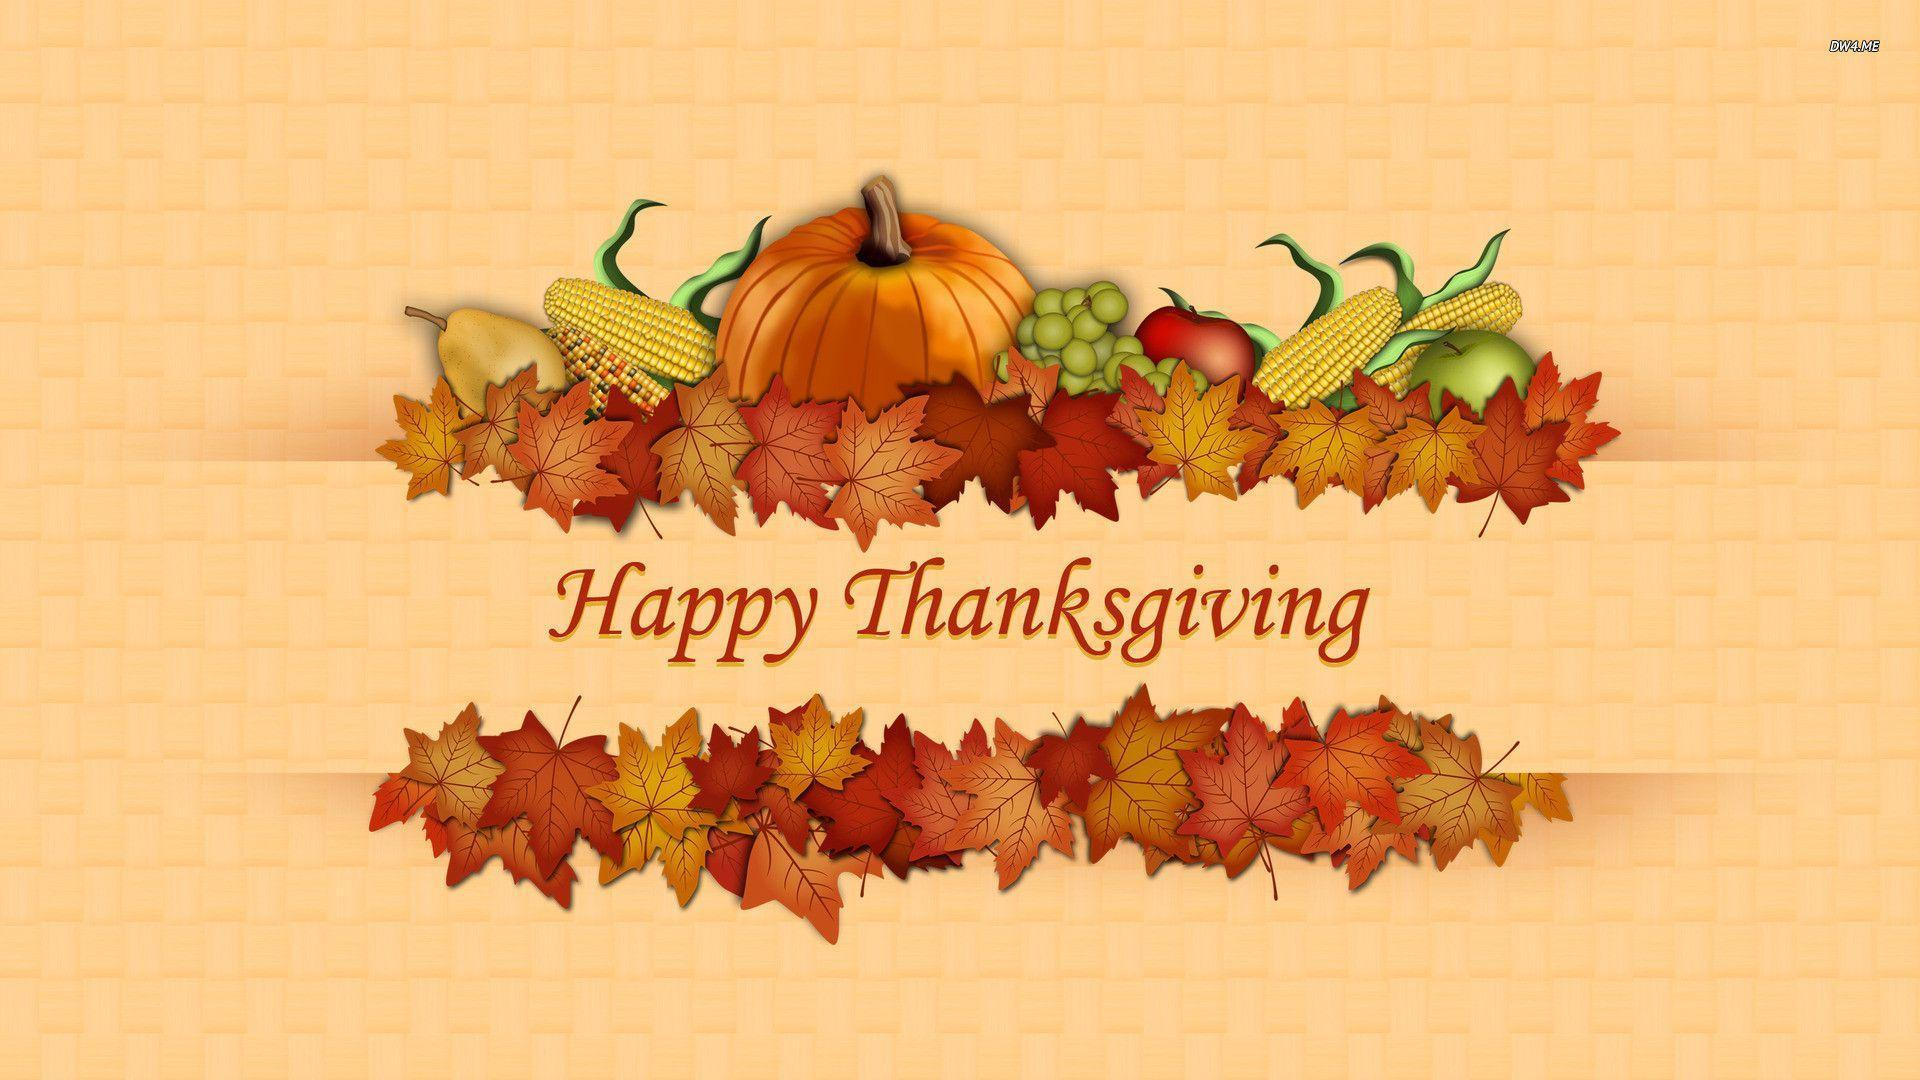 Free Thanksgiving Wallpapers HD & Desktop Backgrounds